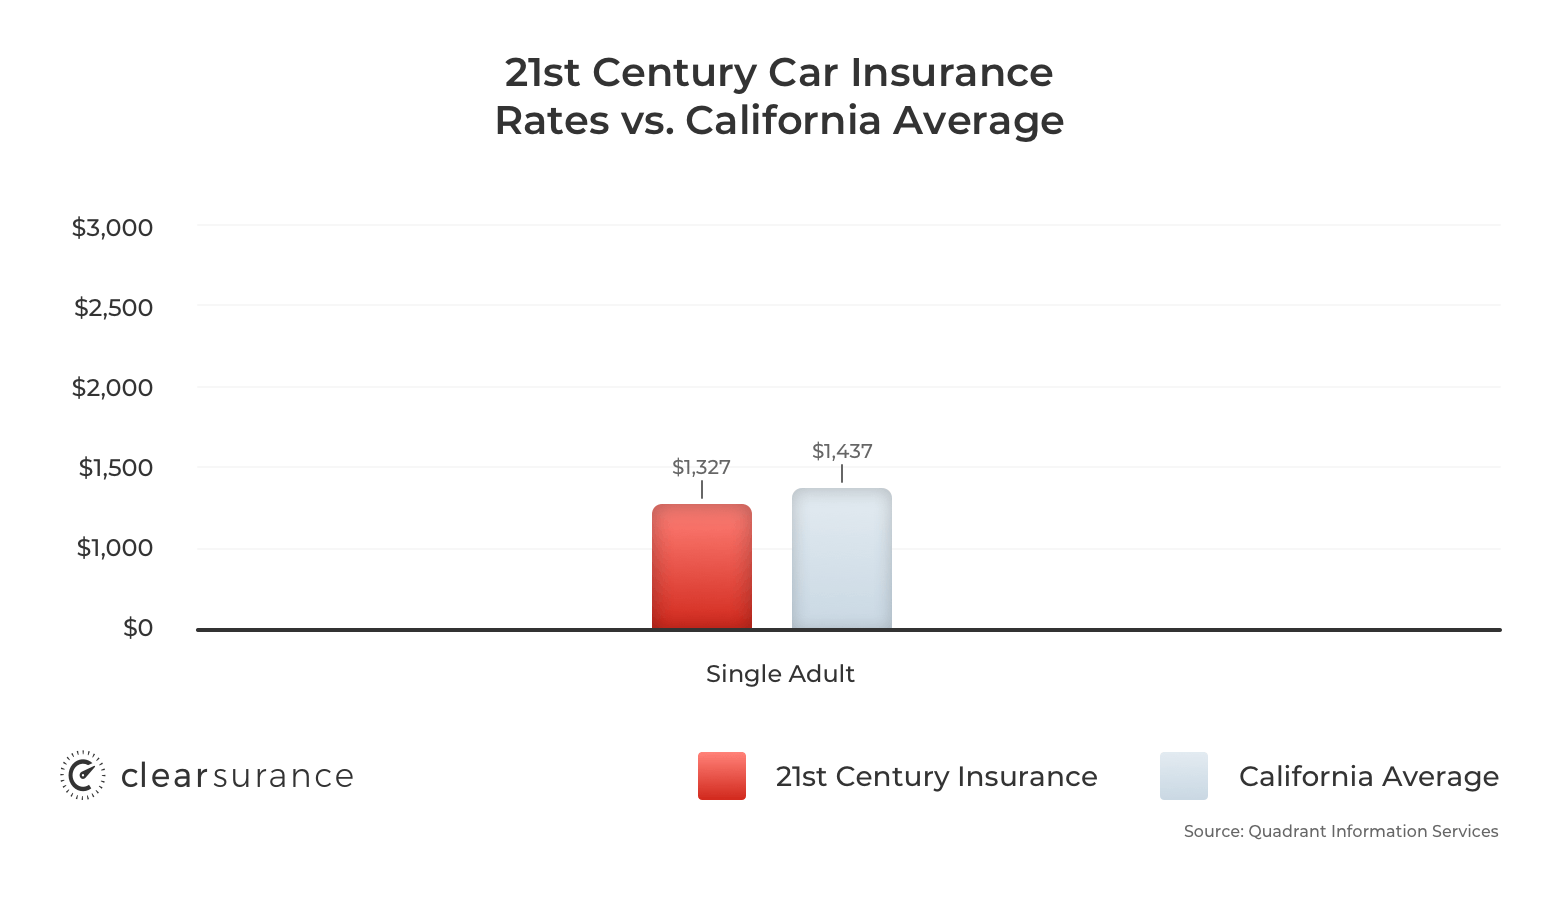 21st Century car insurance rates